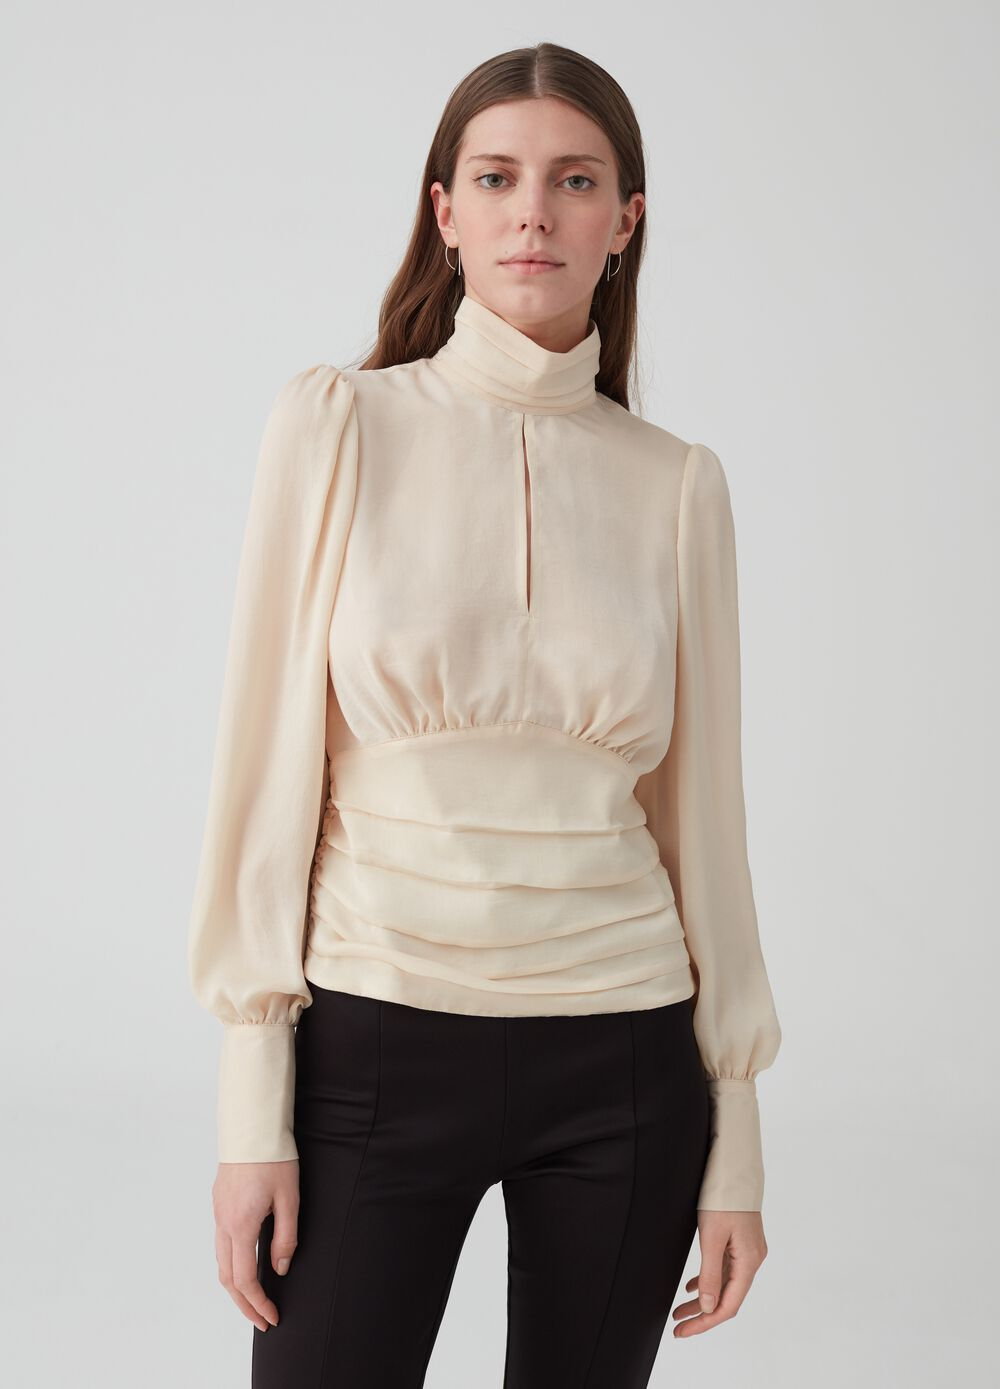 K+K for OVS blouse with high neck